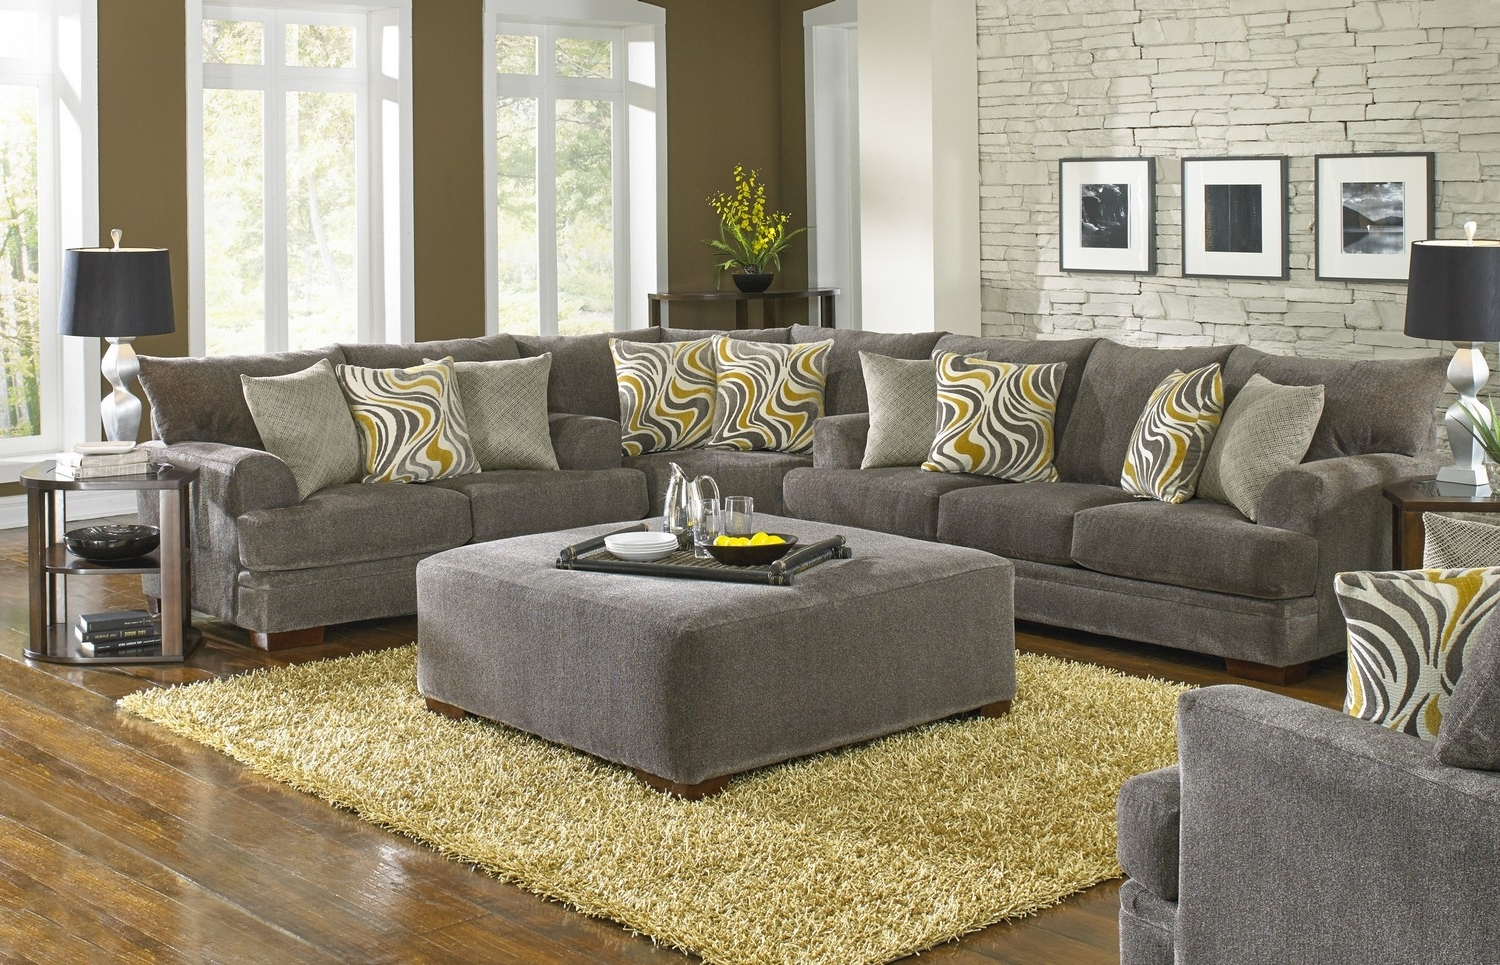 Jackson Crompton Sofa Sectional Set Pewter Jf 4462 Sect For Well Known Dayton